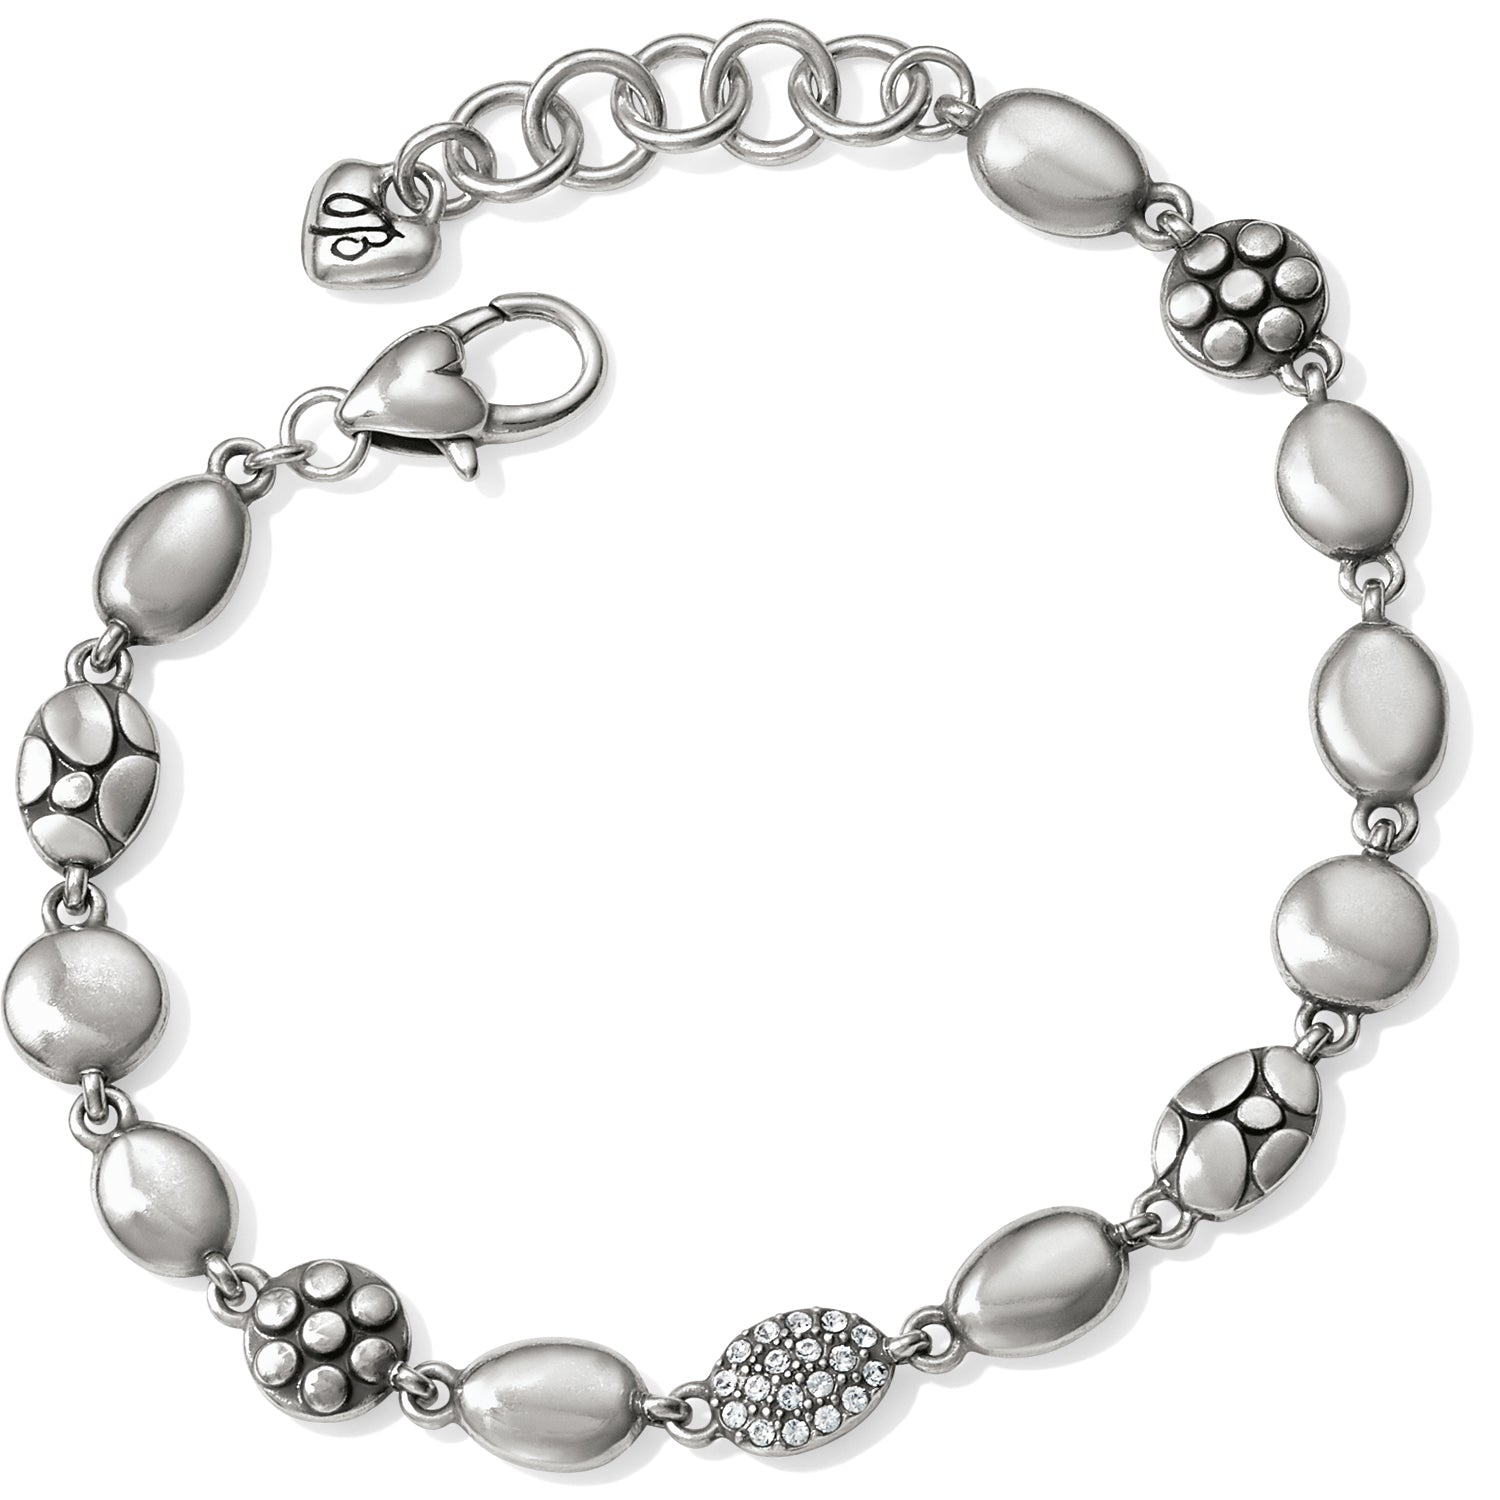 "A mix of textures, including polished silver, sparkling Swarovski and pebble, combine for visual interest on this Brighton Pebble Mix Bracelet. Width: 5/16"" Closure: Lobster Claw Length: 7 1/2"" - 8 1/2"" Adjustable Material: Swarovski crystal Finish: Silver plated"